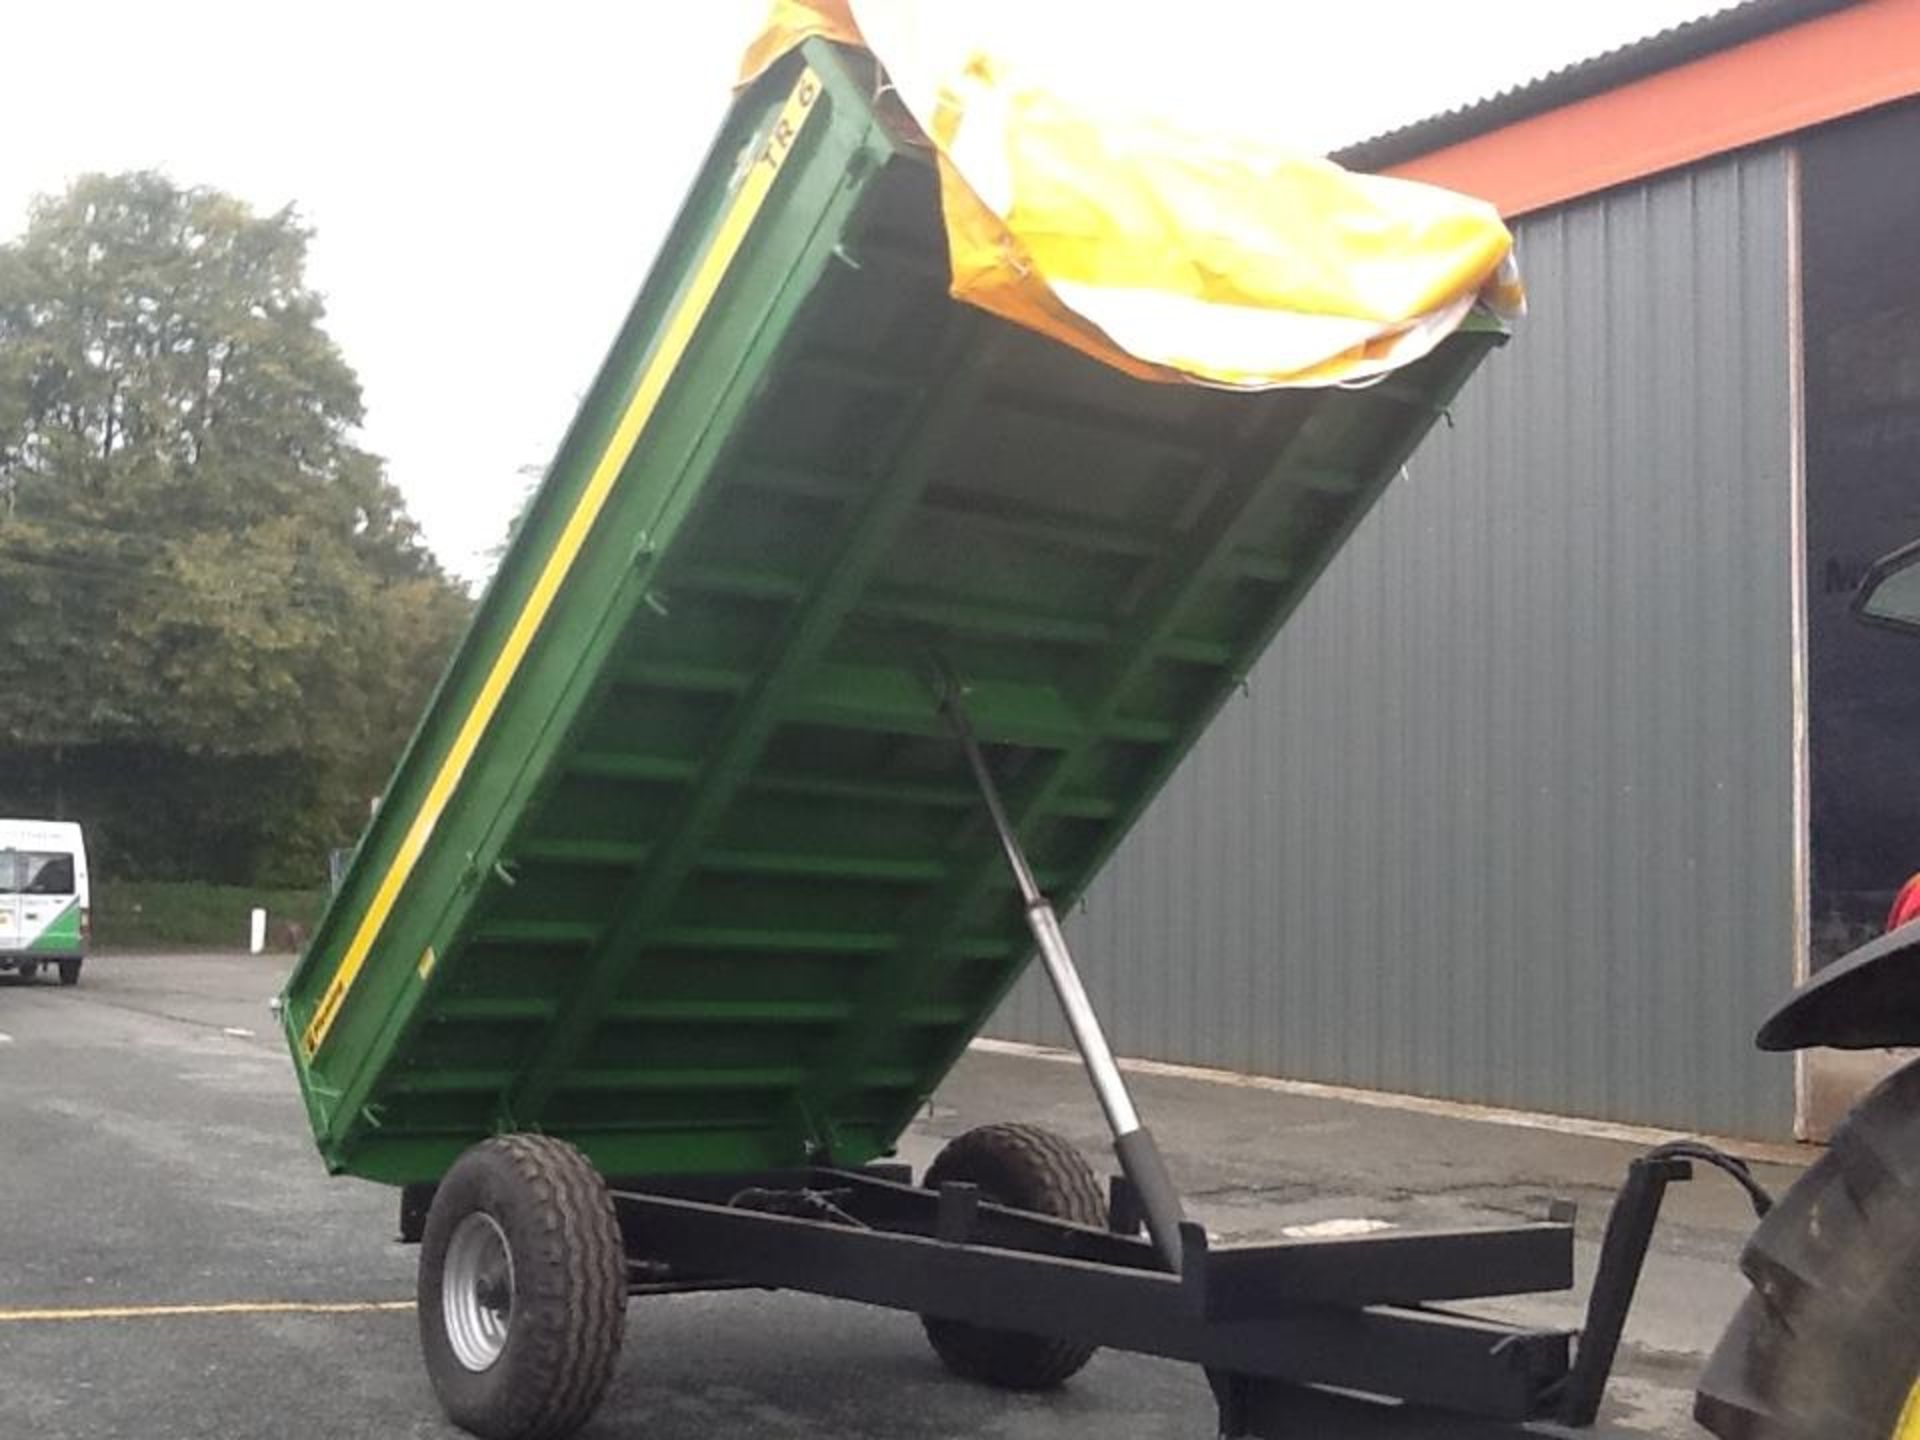 FLEMING 6TR TIPPING TRAILER (2016). HYD BRAKES, REMOVABLE SIDES. LOCATED TAVISTOCK PL19 8DH - Image 2 of 5